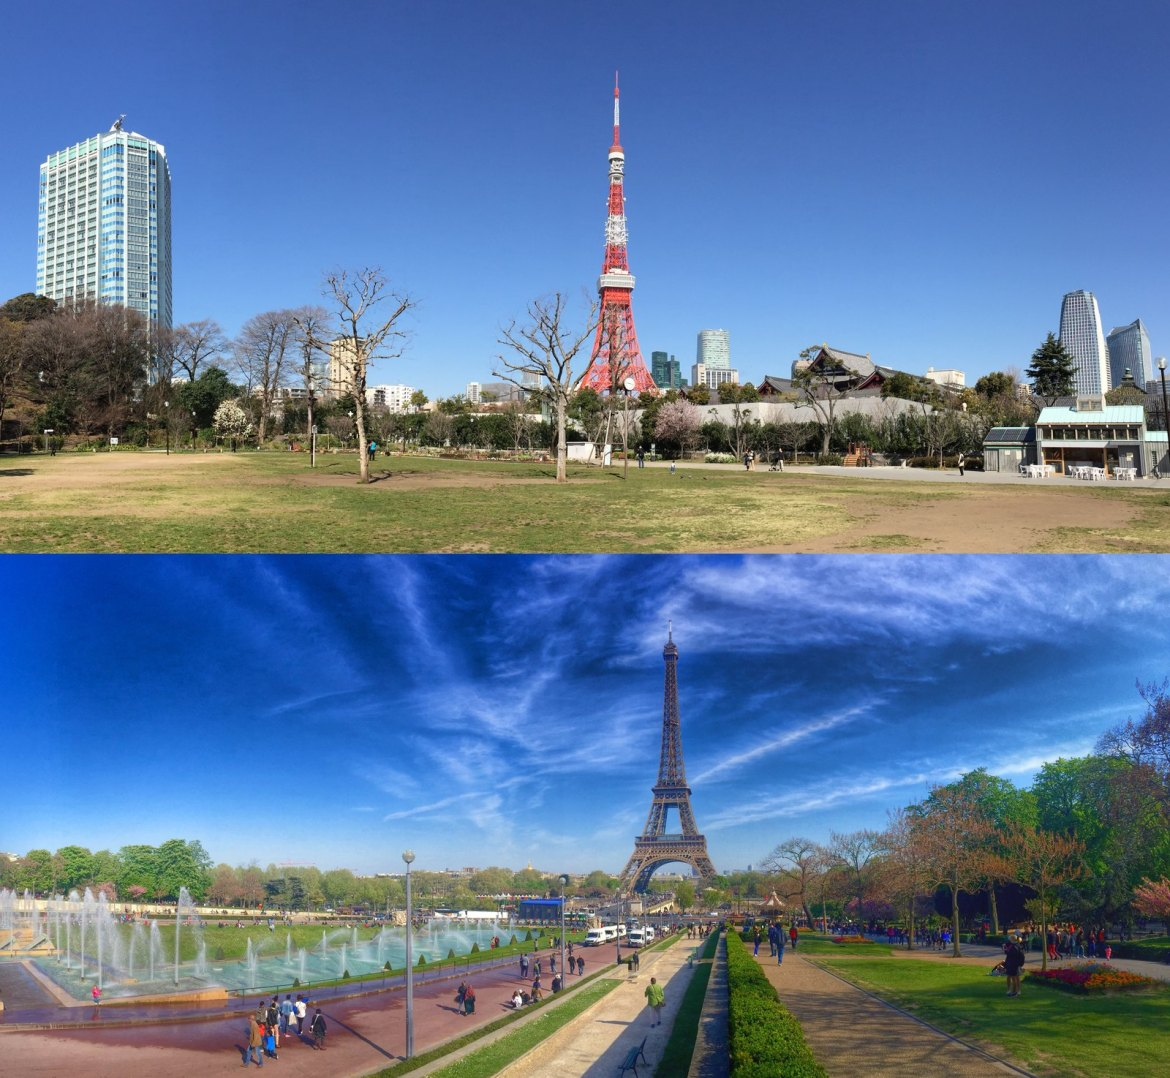 Panorama Tokyo Tower and Eiffel Tower